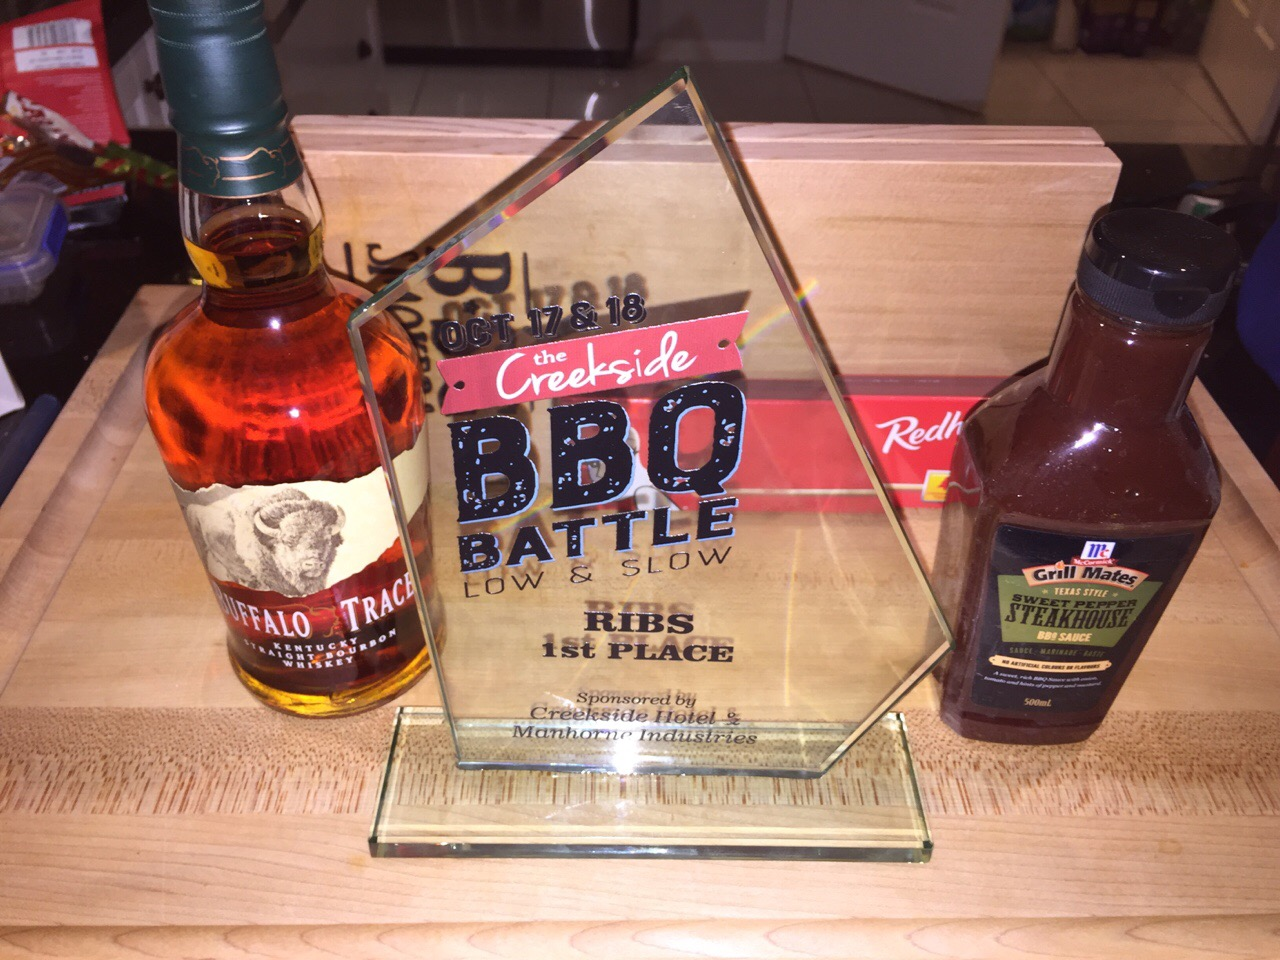 1st place Ribs Creekside 5th Overall 2015, Dave and Karen, 2nd Competition